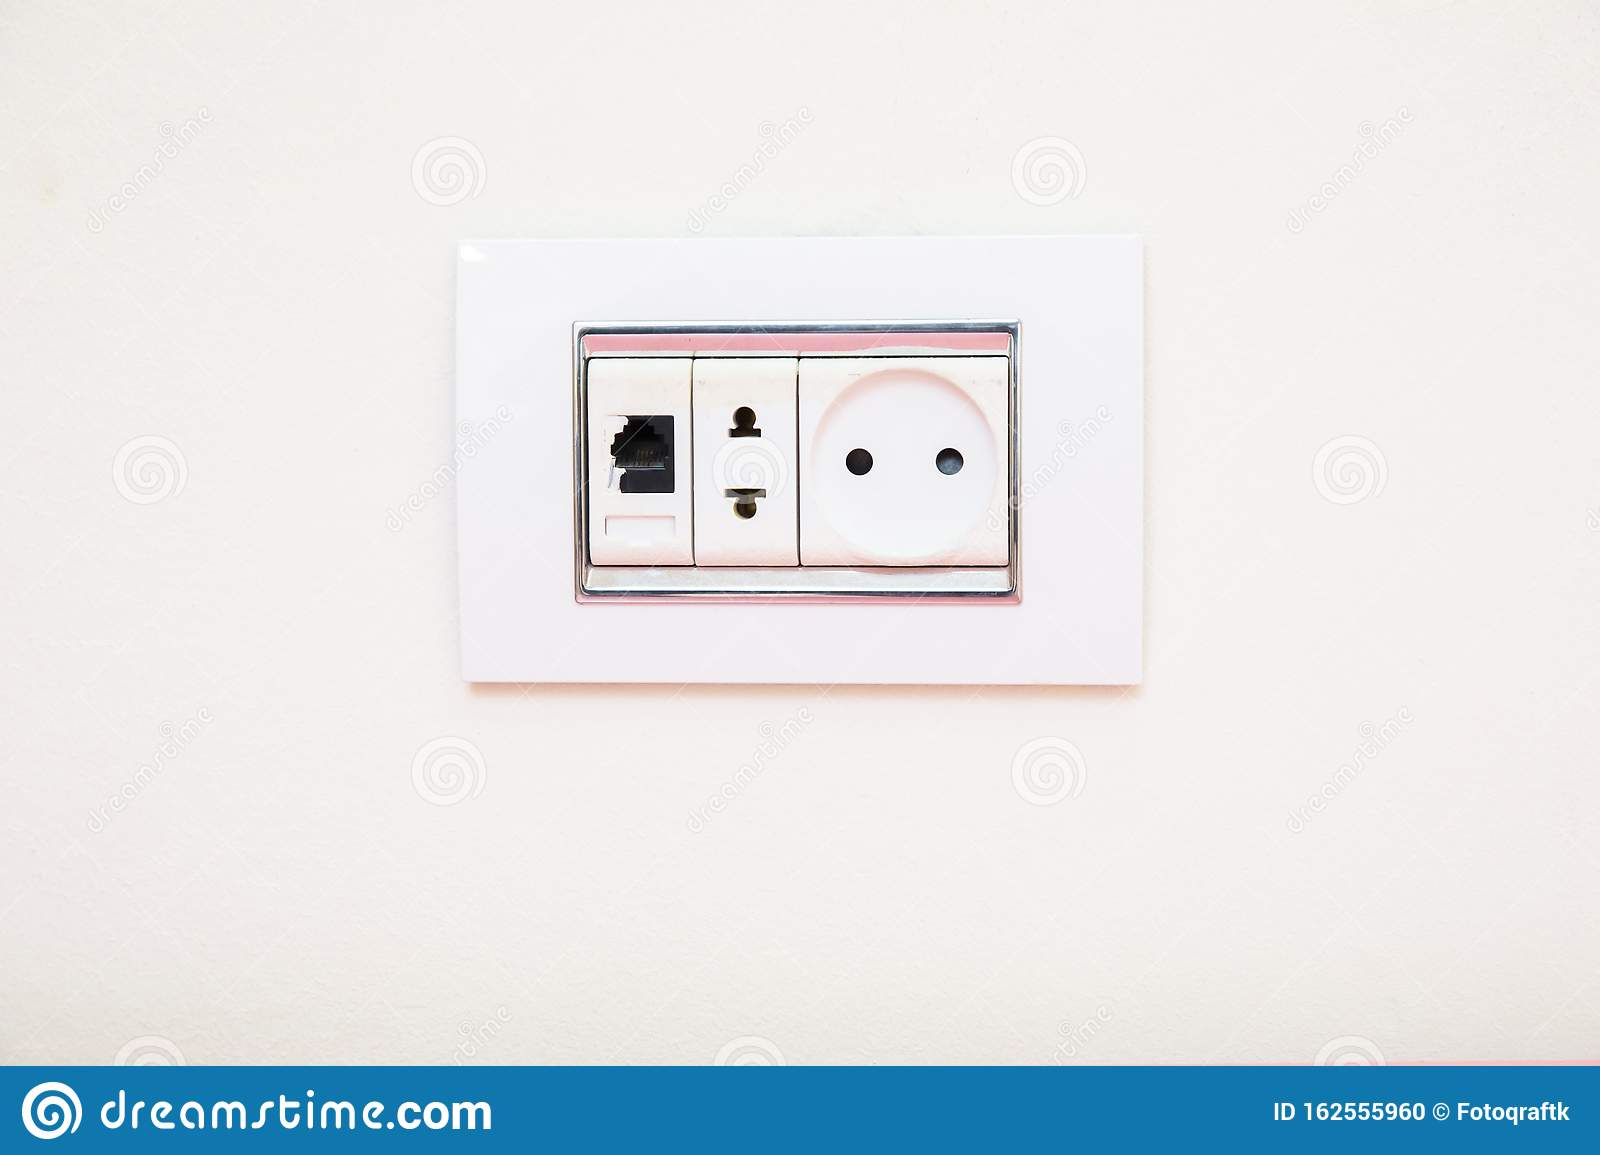 A Socket On A Light Gray Wall, A Multifunction Outlet With ...